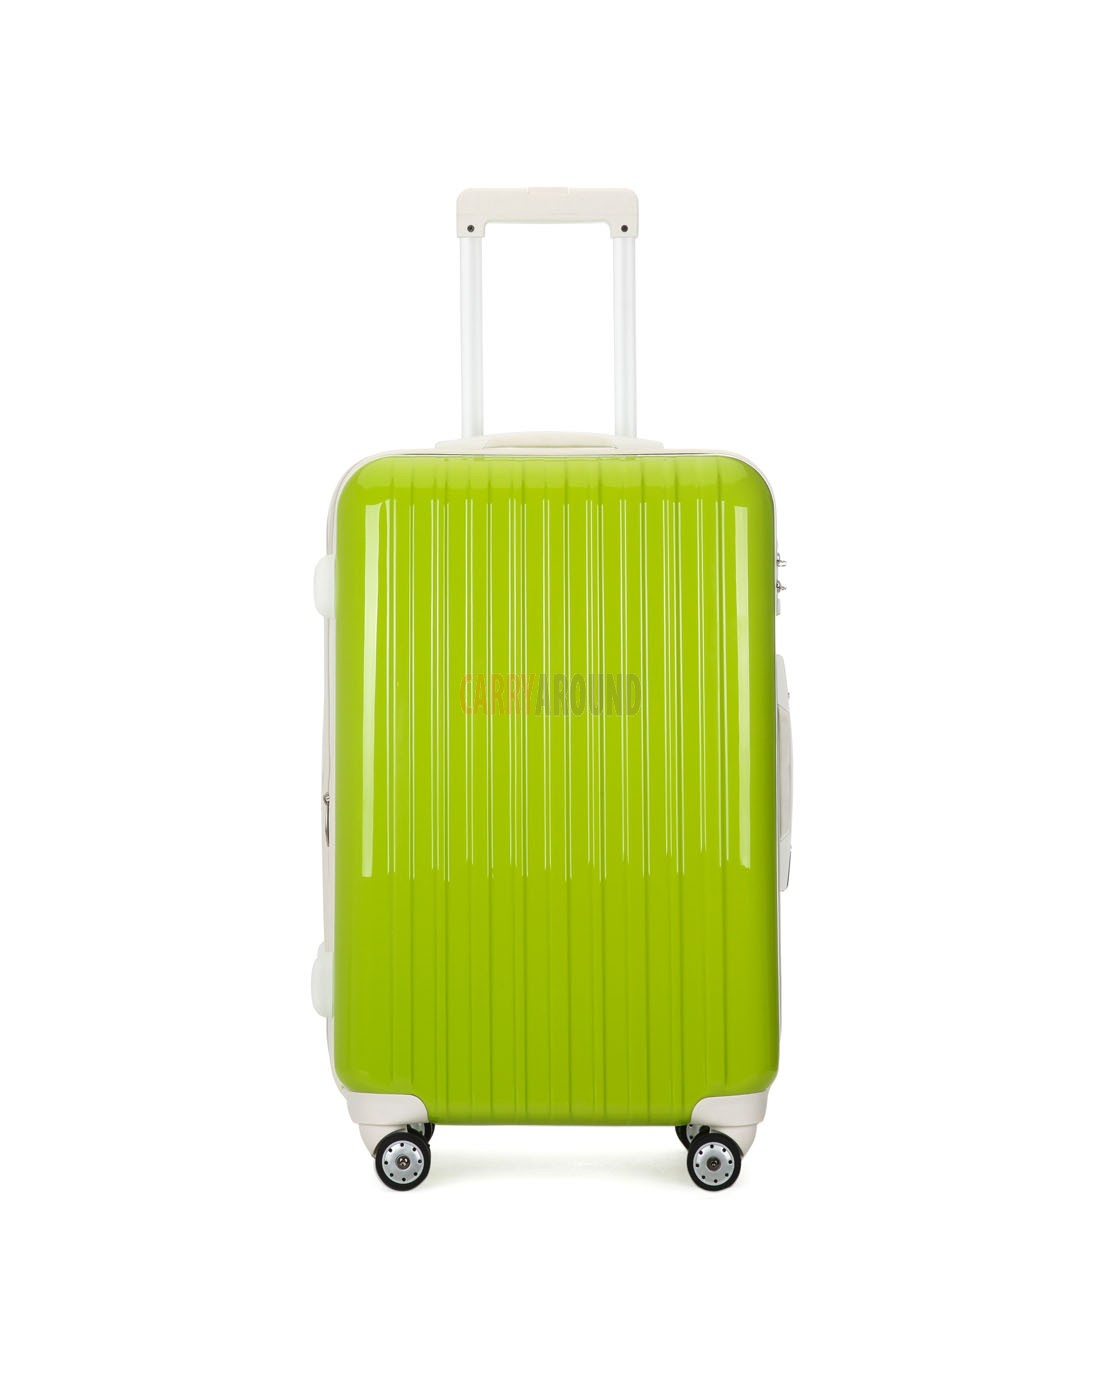 "AIRCROSS 2PC SetLuggage A55 Light Green Hard Case Expandable Trolley Luggage - 20""24"""